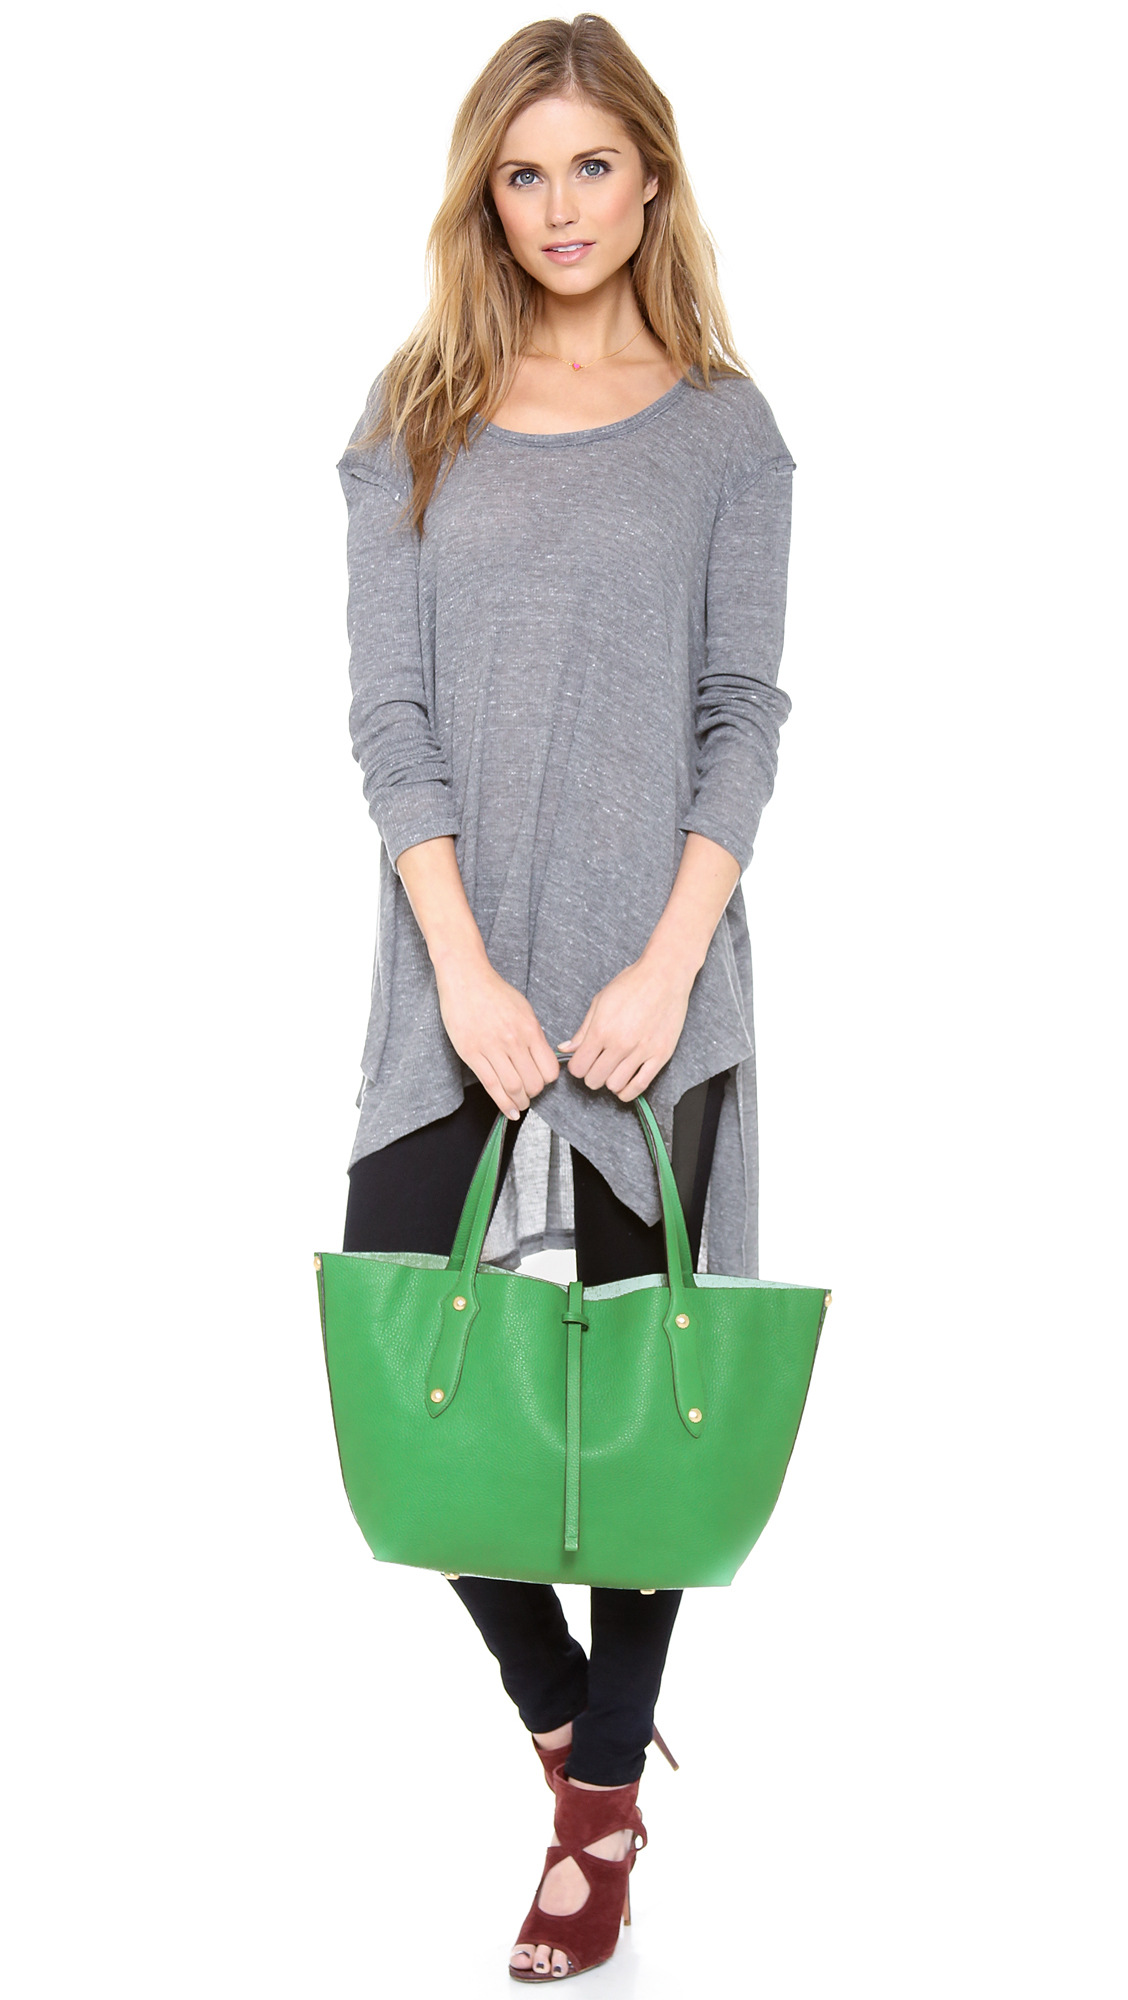 Lyst - Annabel Ingall Small Isabella Tote - Honey in Green a5c53fc80e7e5